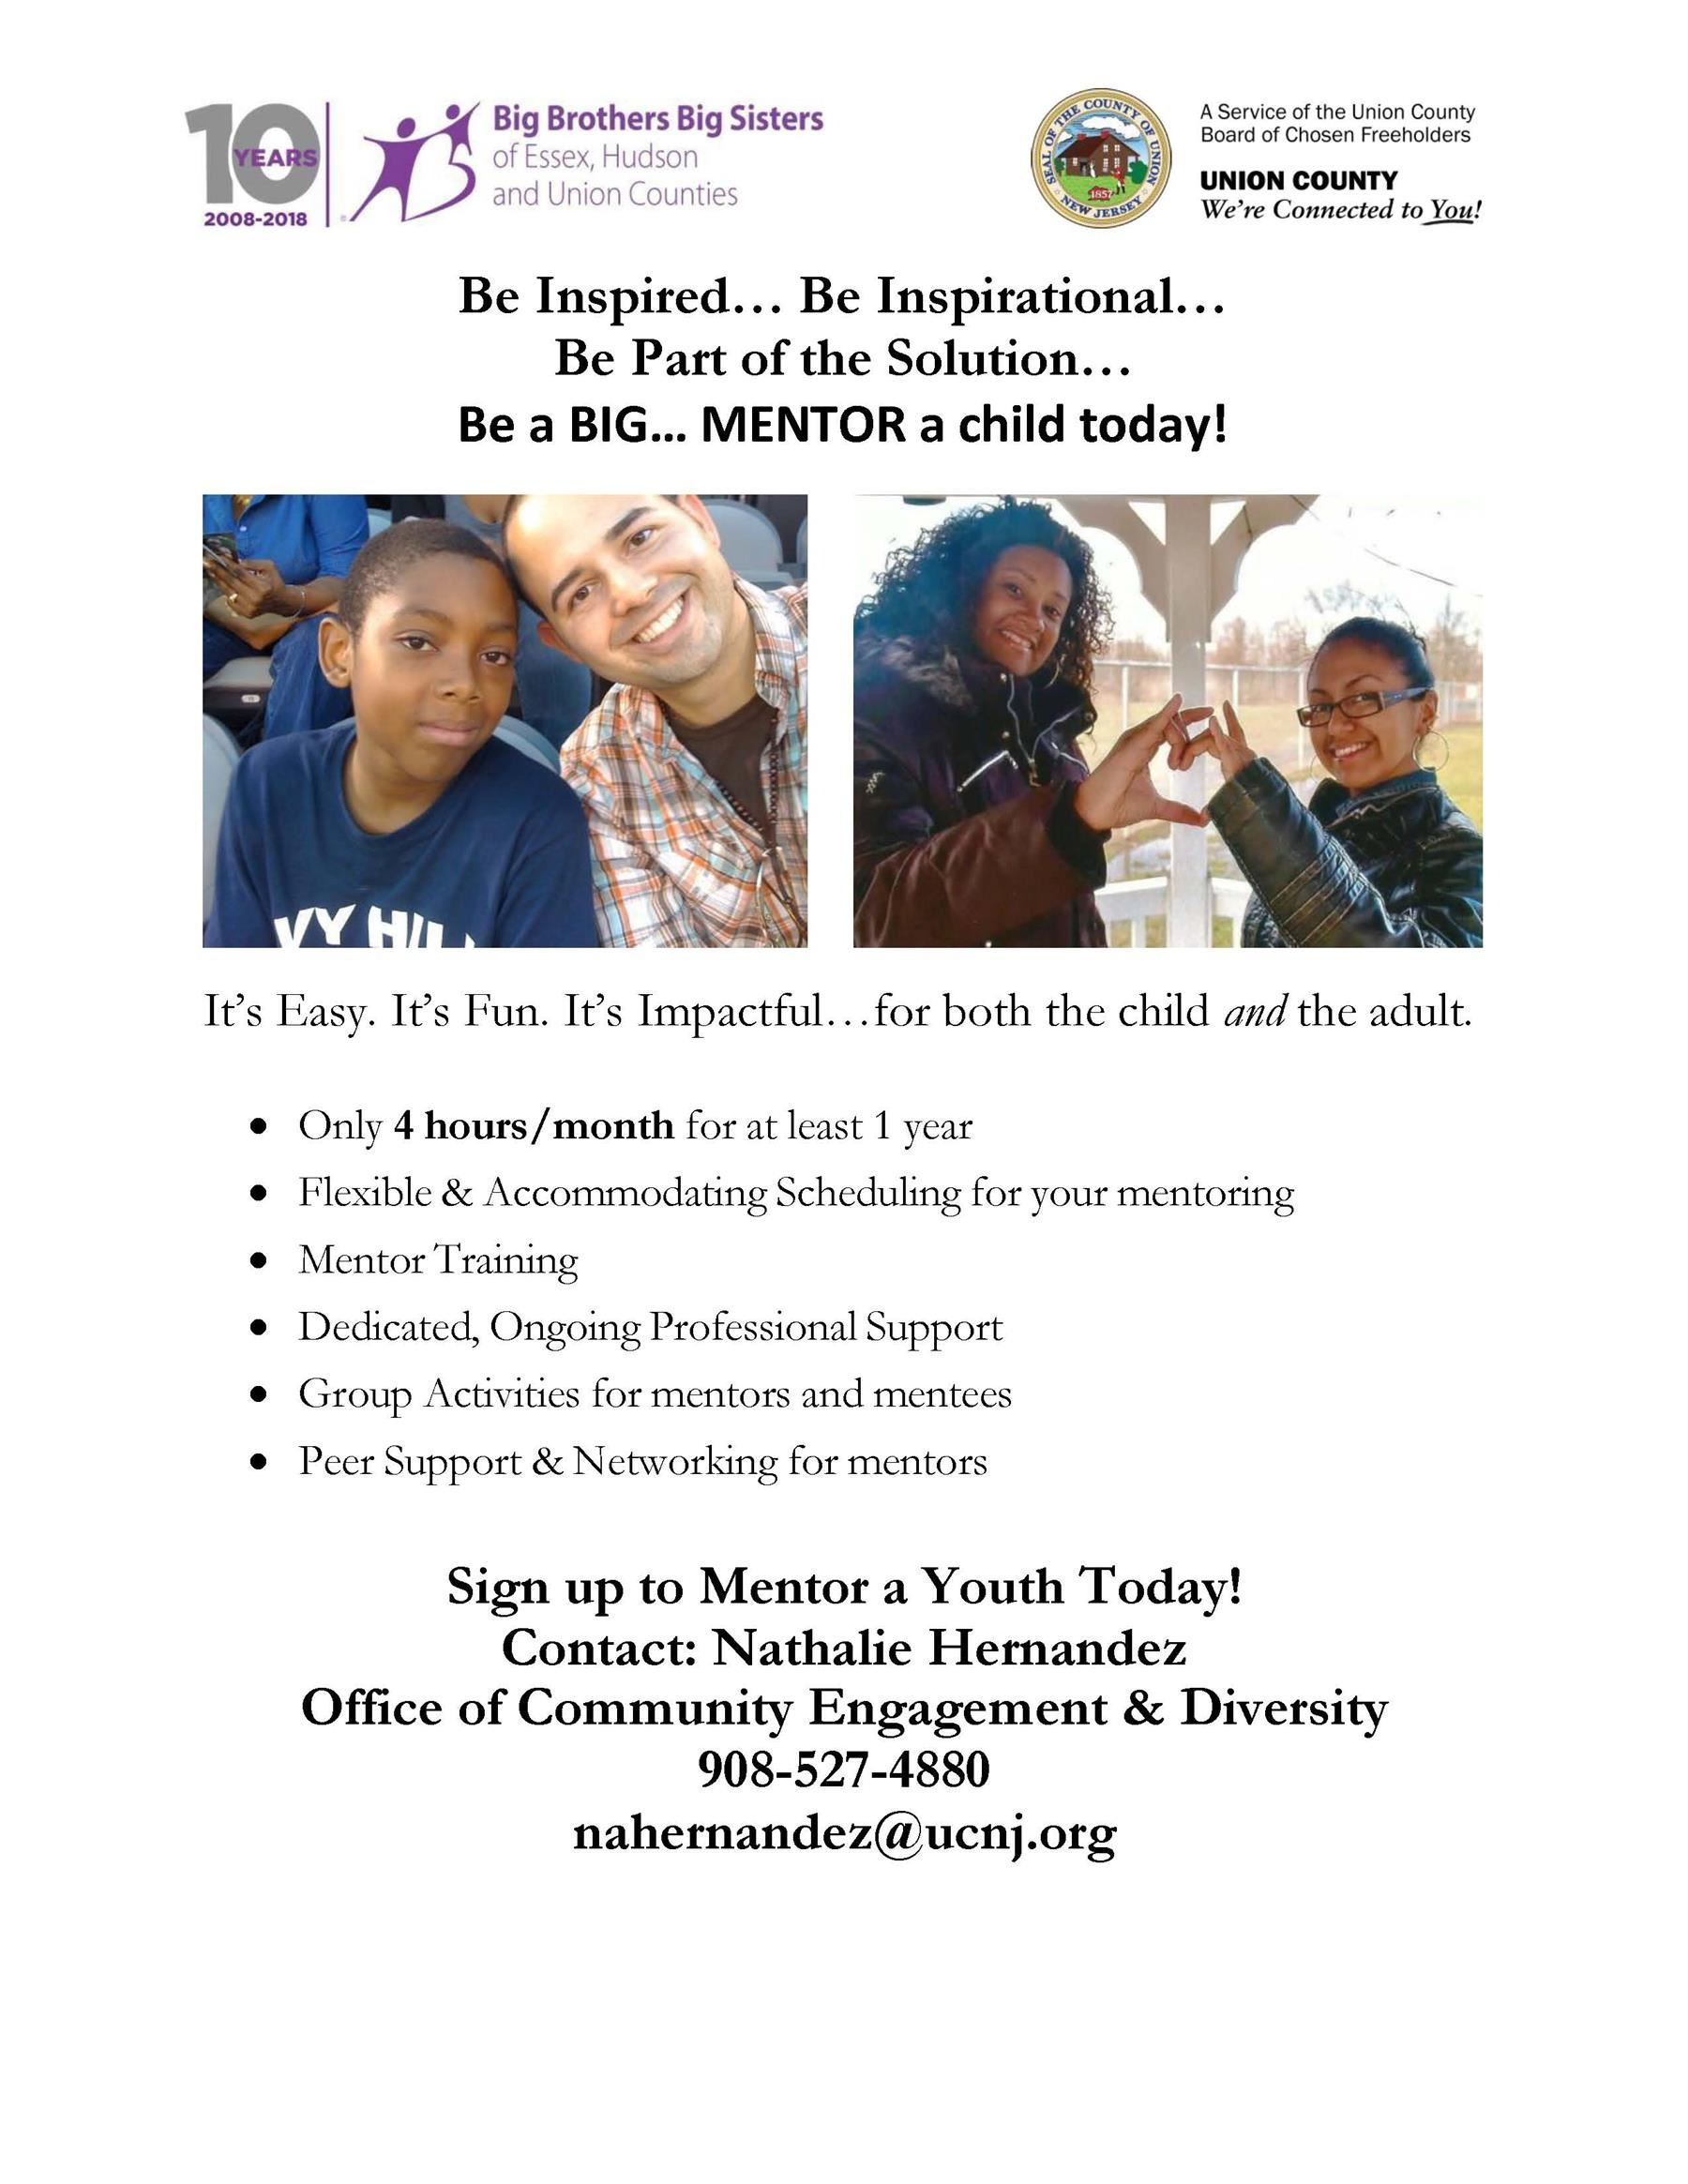 Union County Partnership with Big Brothers Big Sisters Recruitment